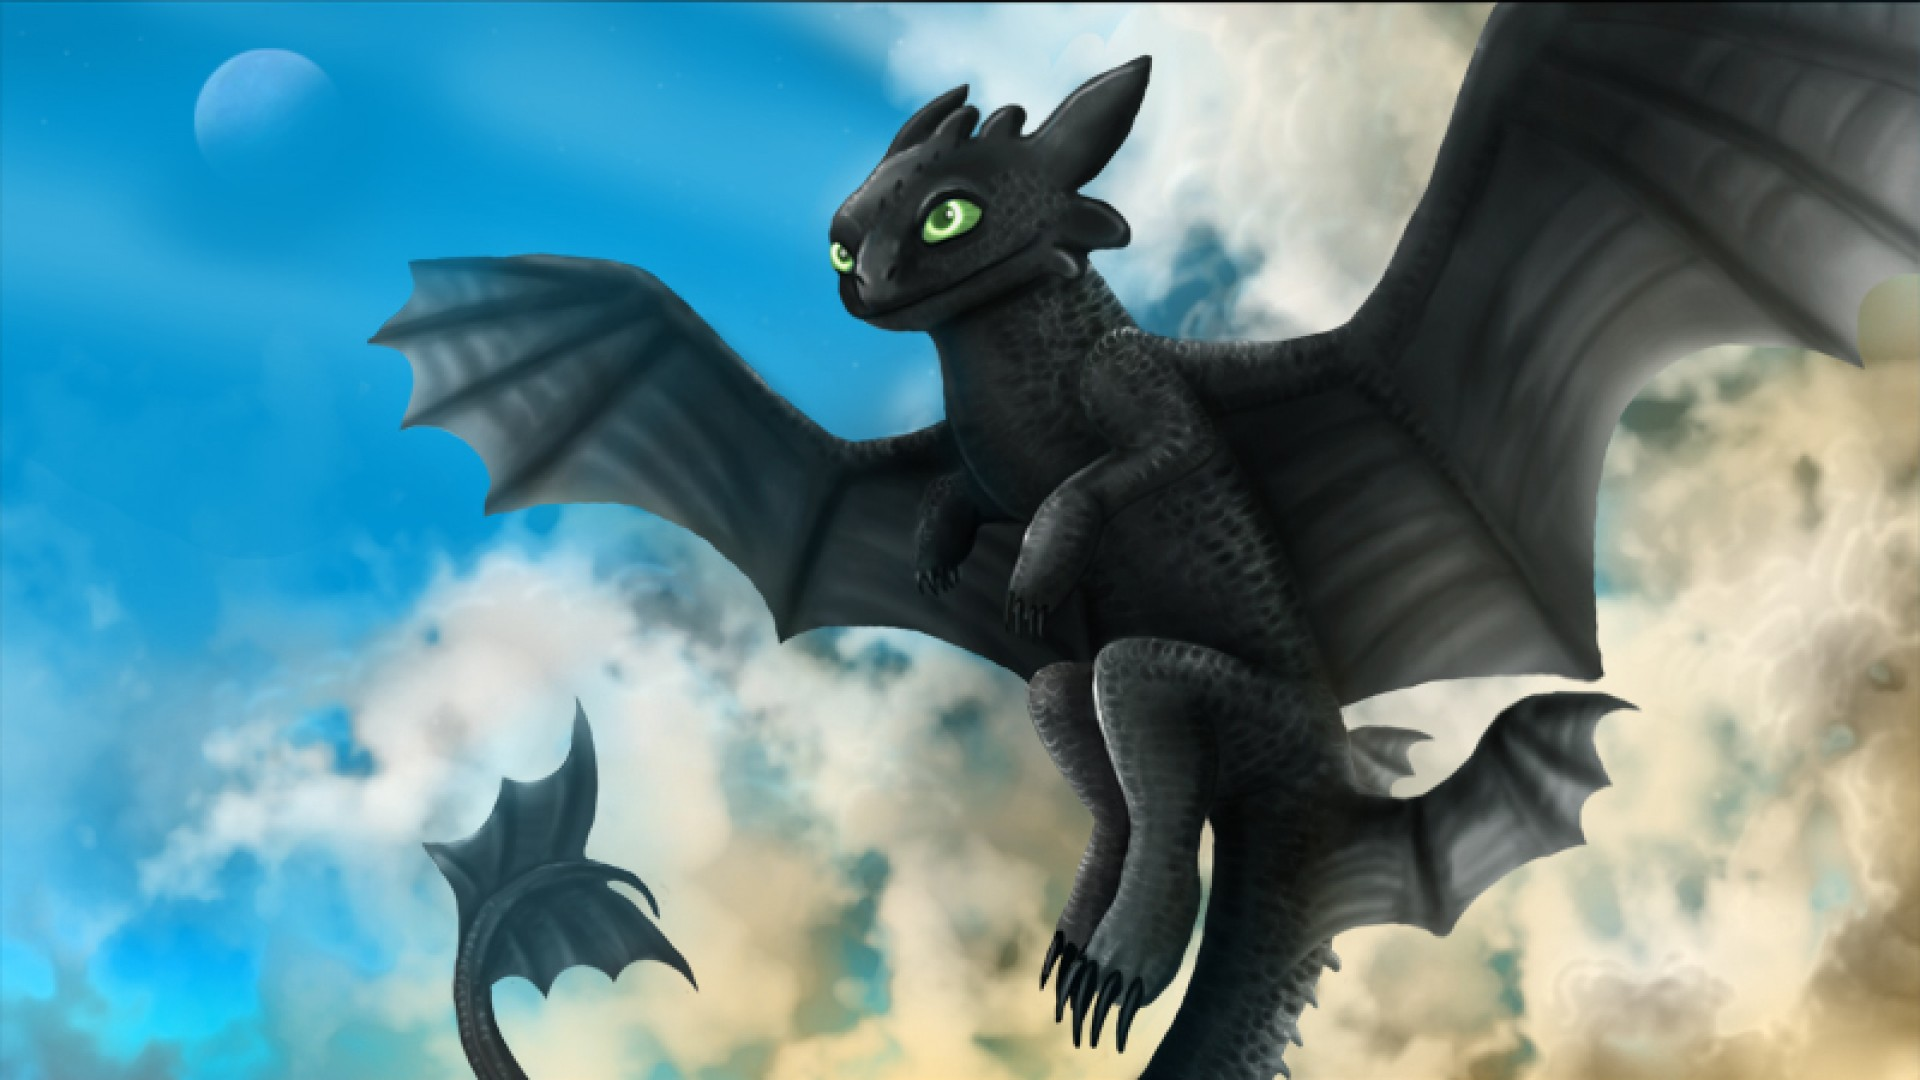 Toothless   Wallpaper High Definition High Quality 1920x1080